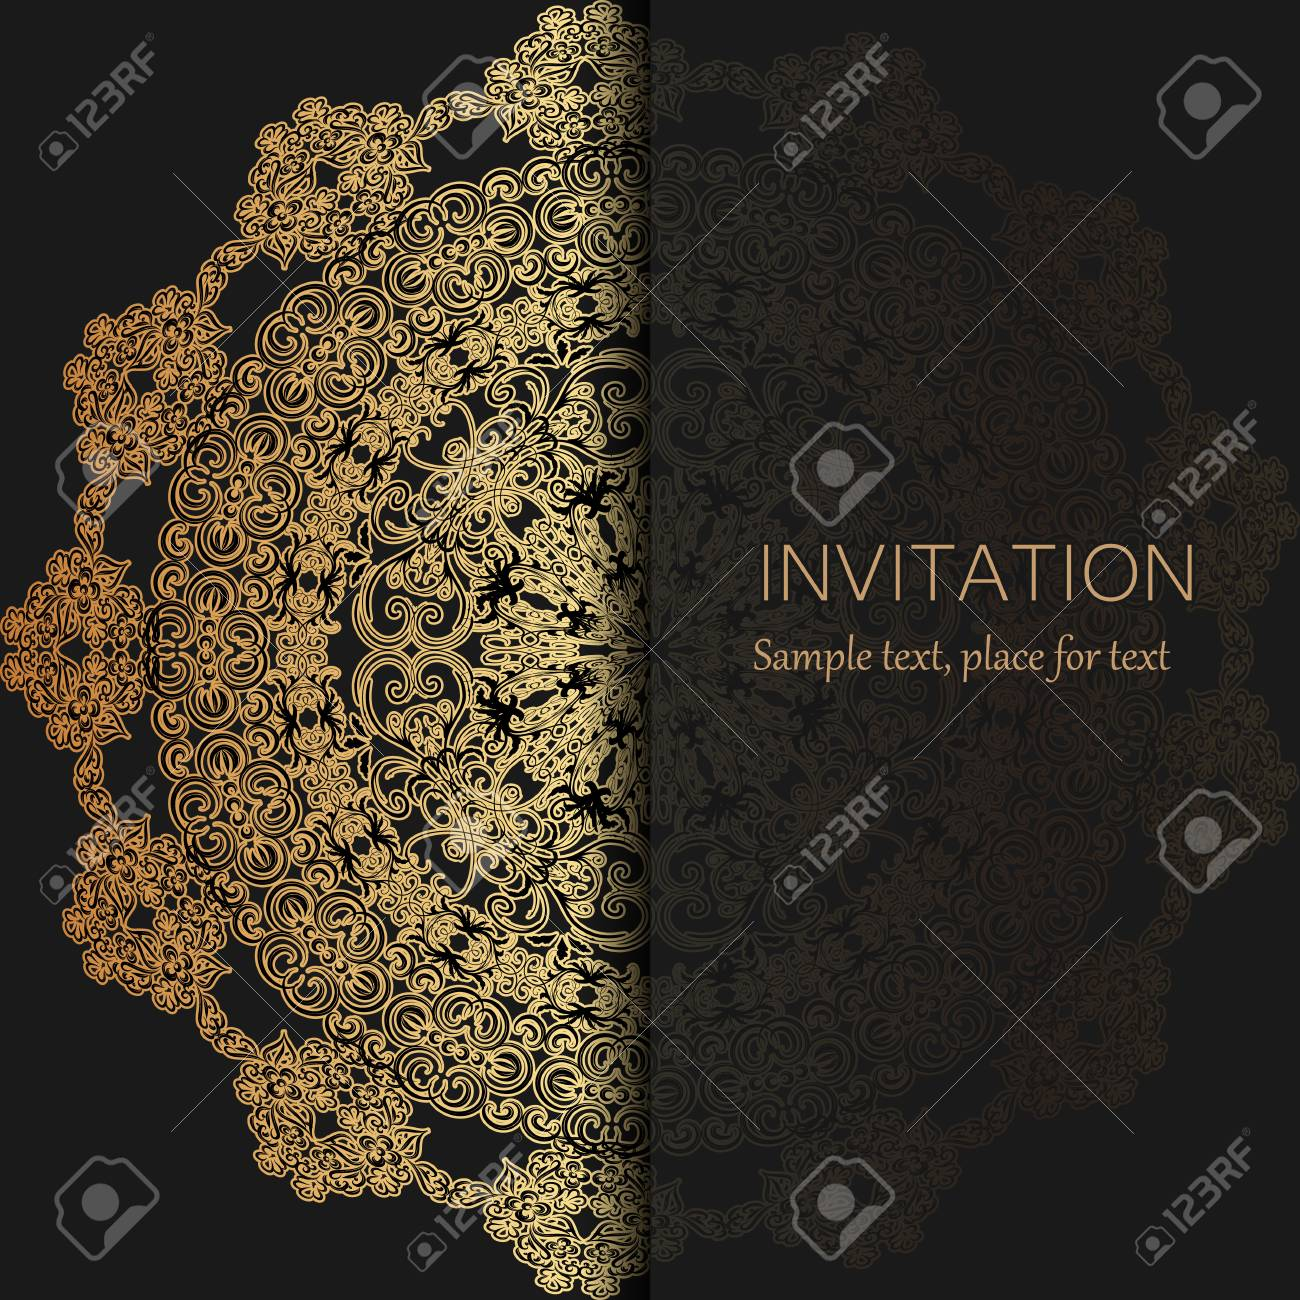 Invitation Template Modern Design Wedding Or Card With Abstract BackgroundVector